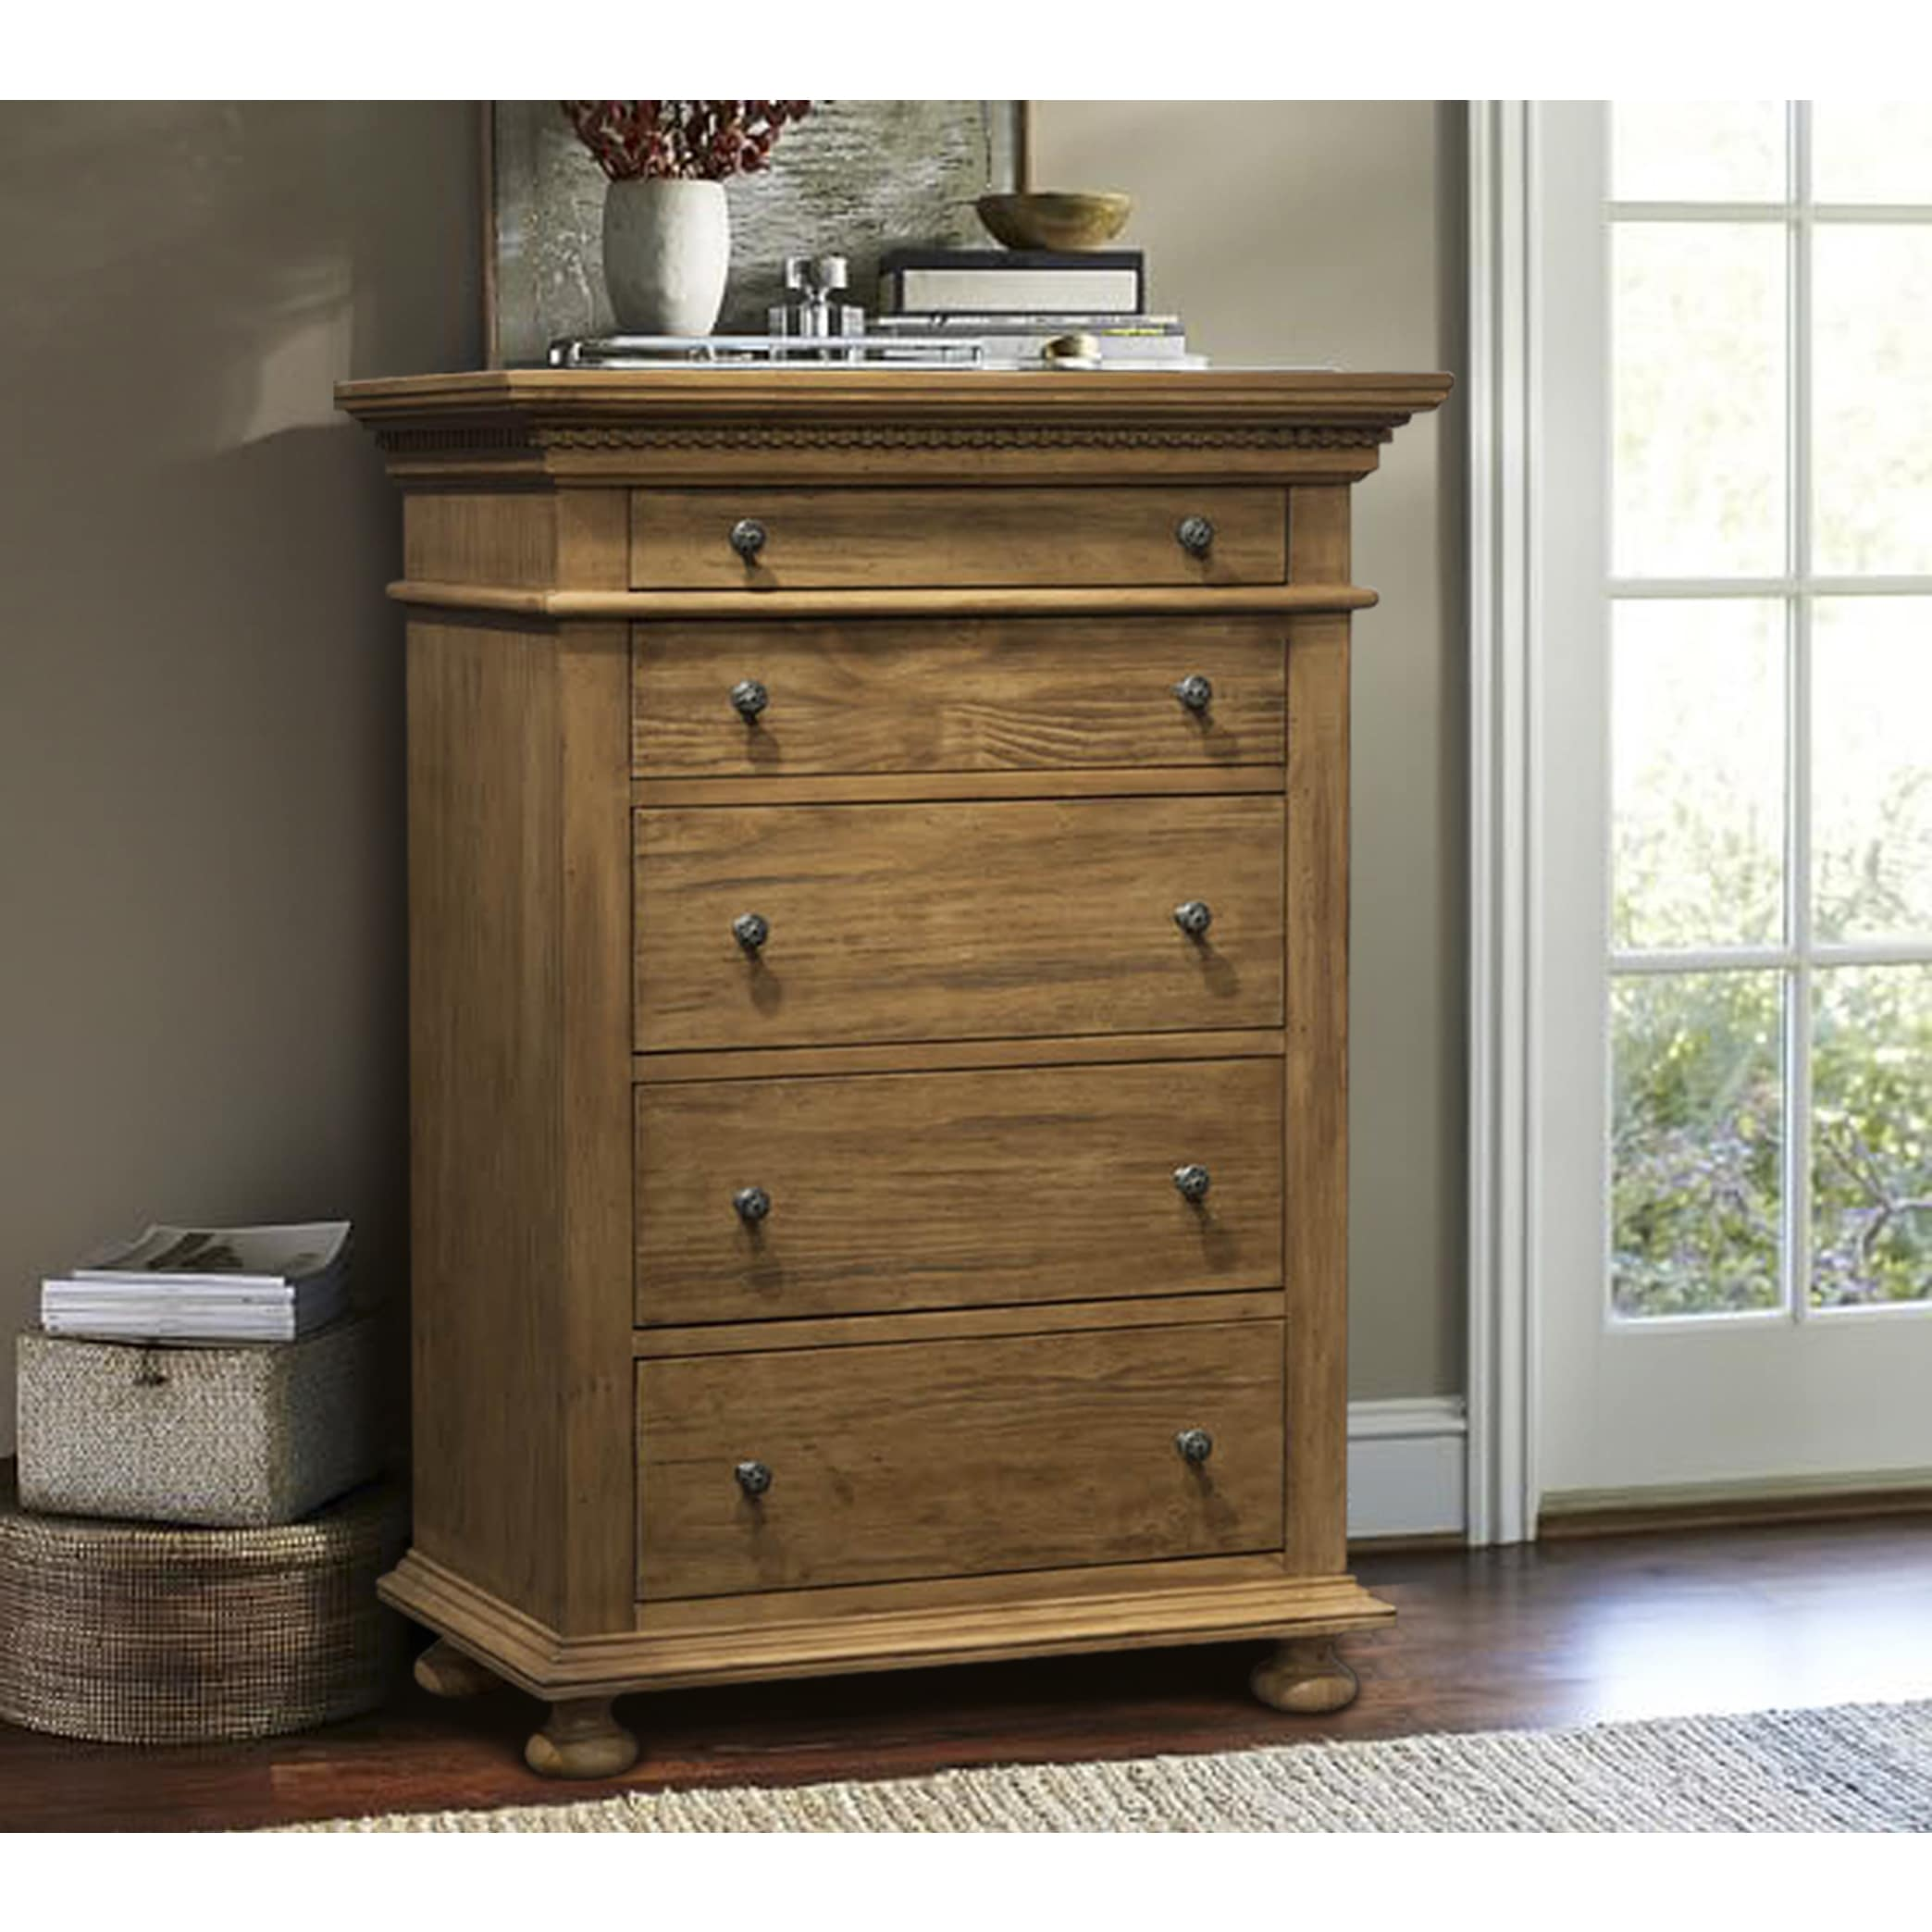 Sheesham Baum Honey Finish Rustic Furniture Shop Our Best Home Goods Deals